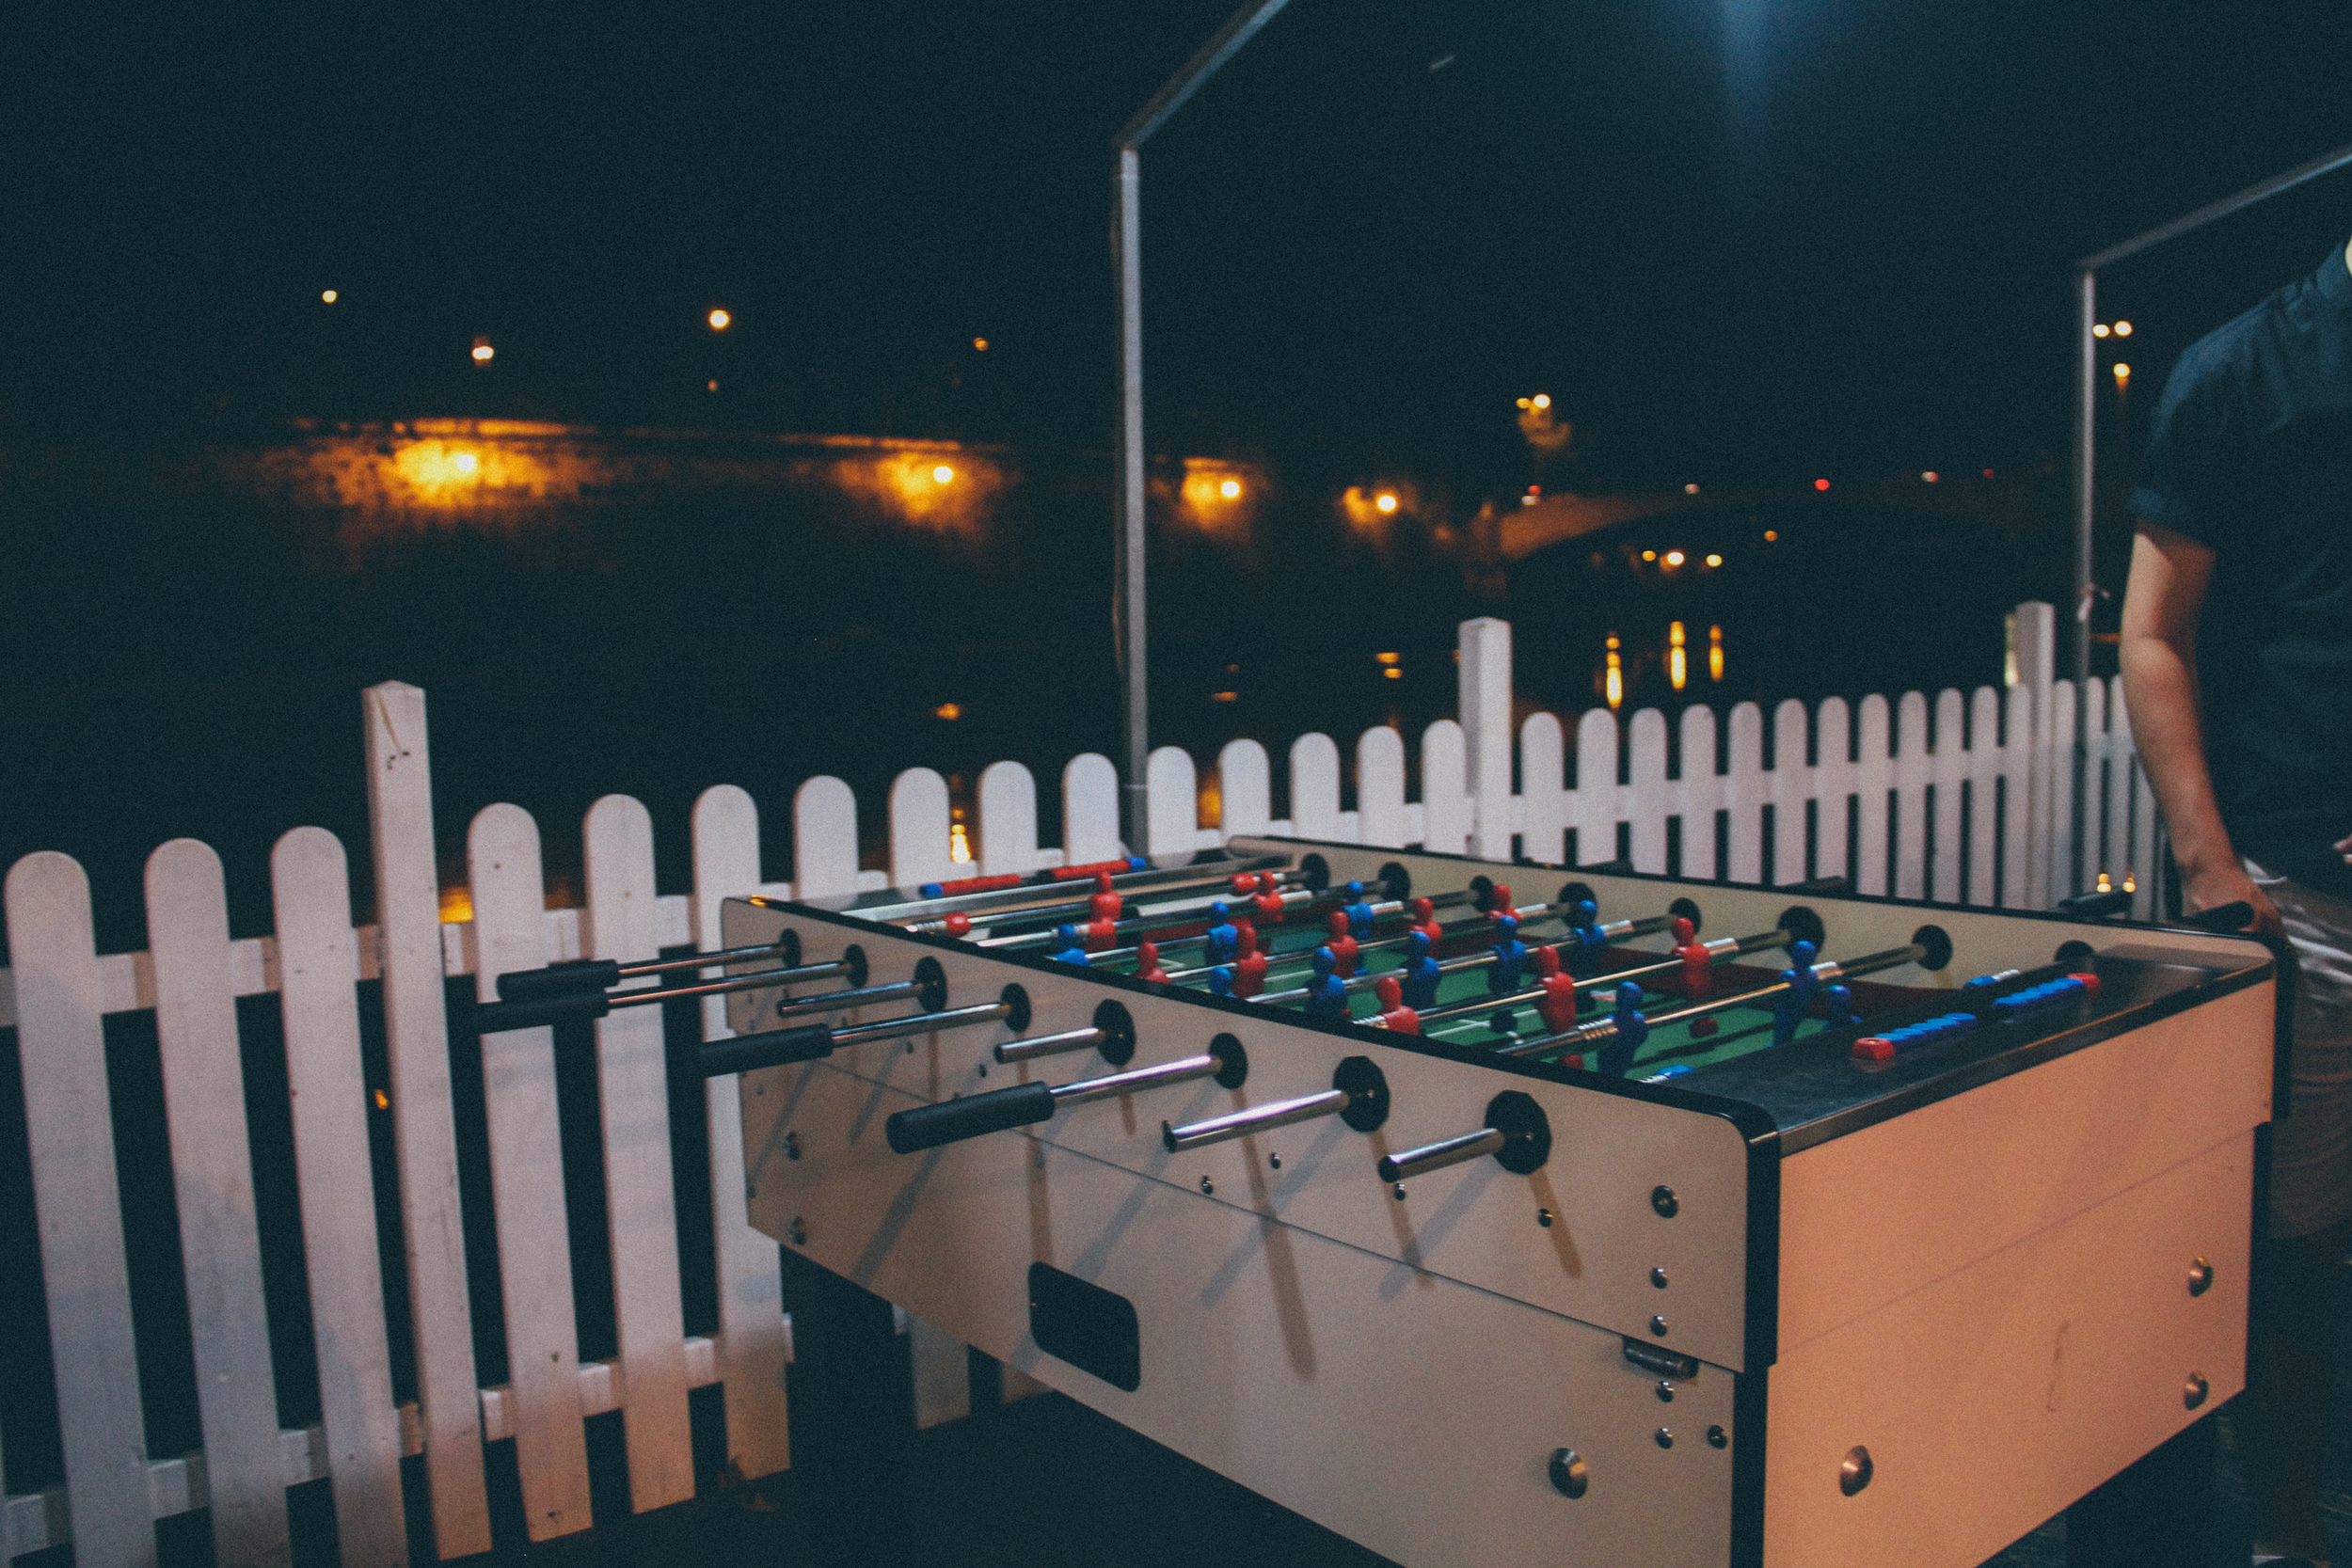 """If you walk along the Tibet River during the summer from 7 pm - 2 am, you'll find an amazing market called """"Lungo il Tevere"""" (Along The Tiber). It's a mile full of restaurants, events, shops + entertainment. Hello! They had foosball"""